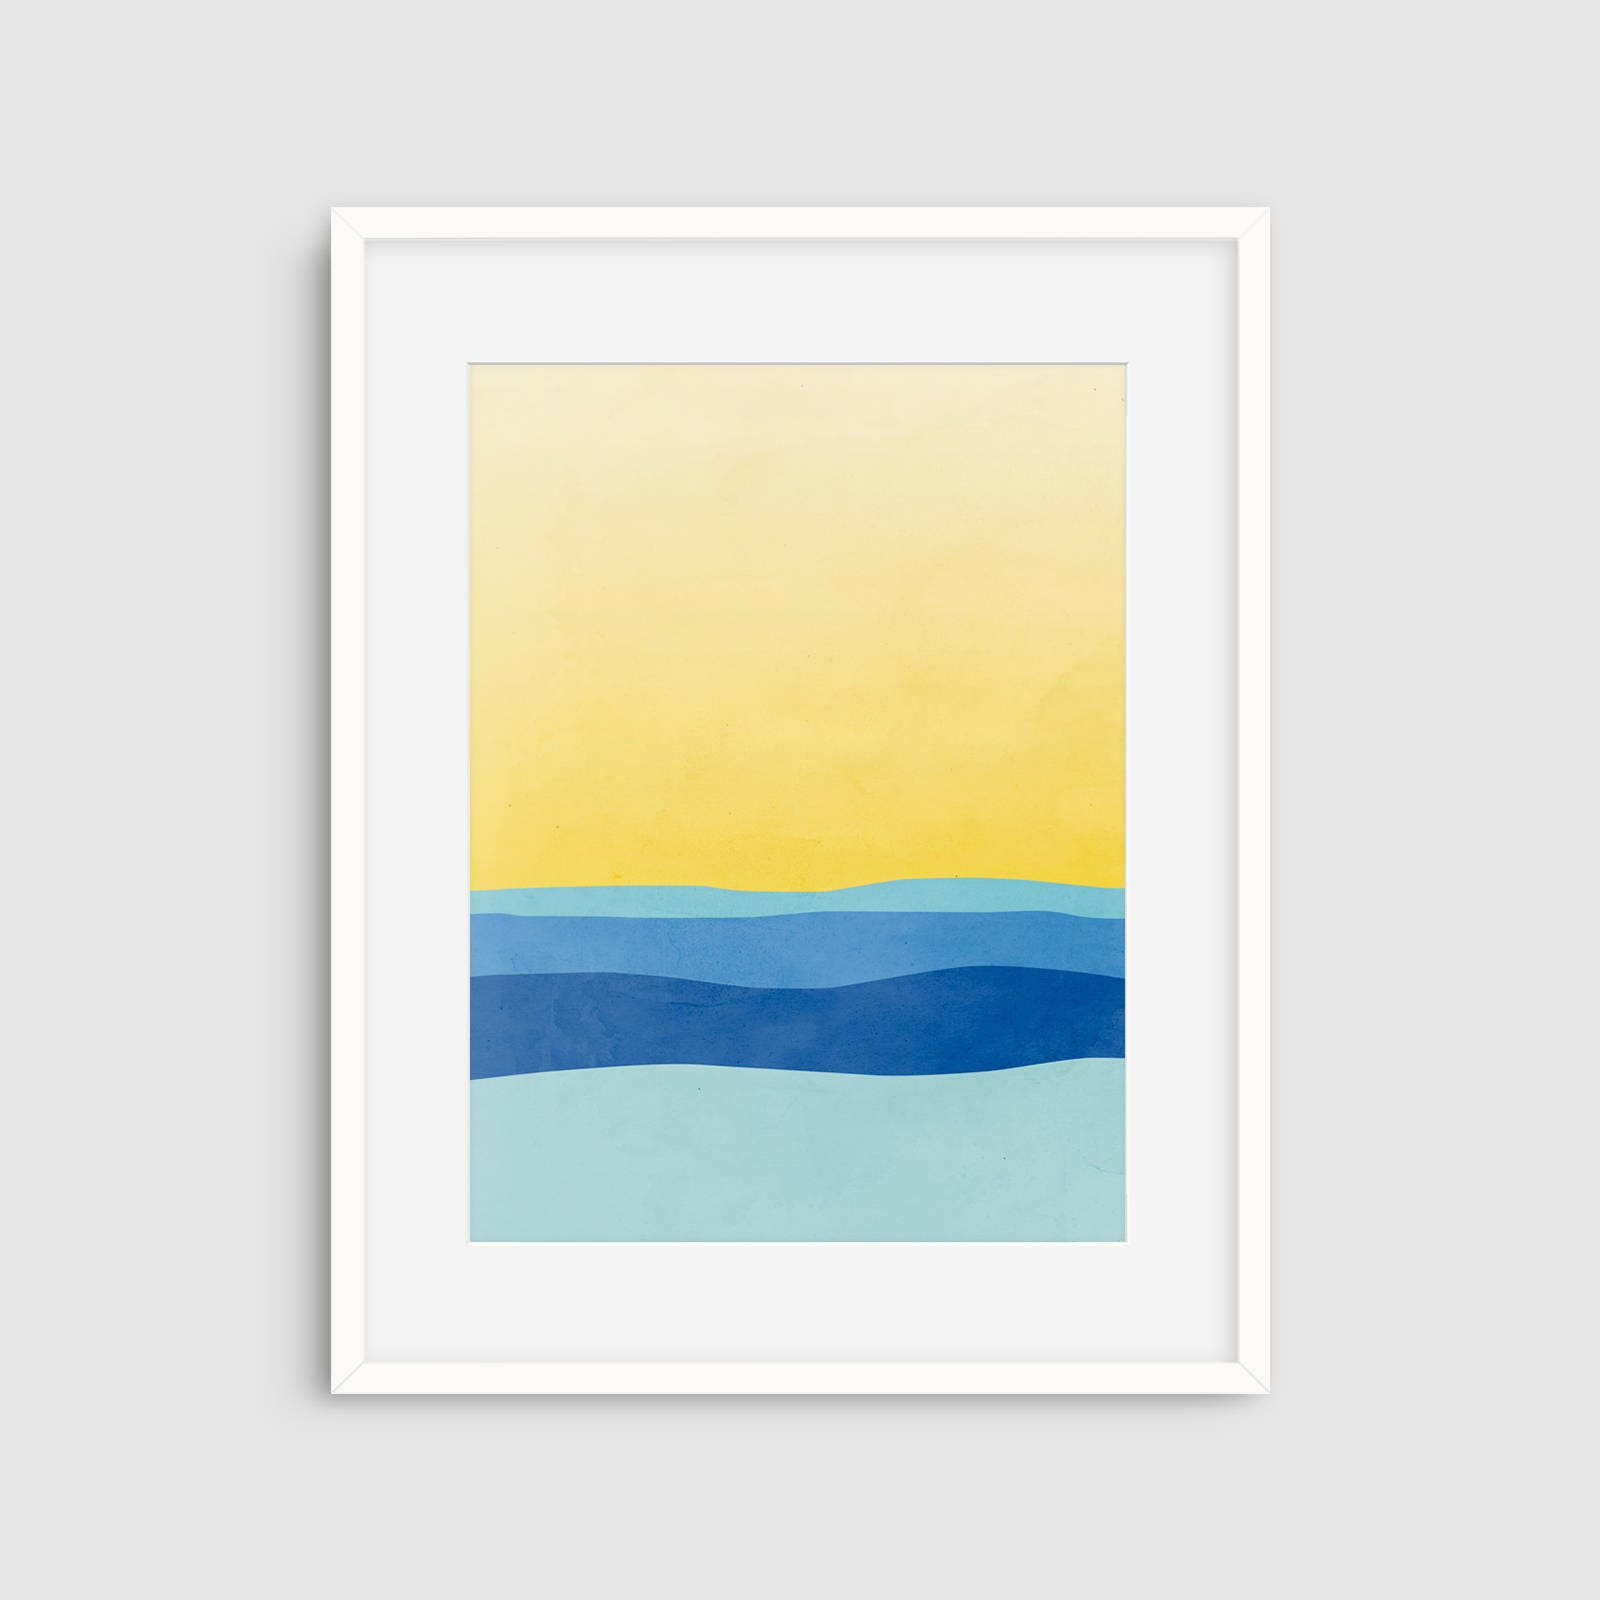 Charming Minimalist Wall Art Pictures Inspiration - The Wall Art ...